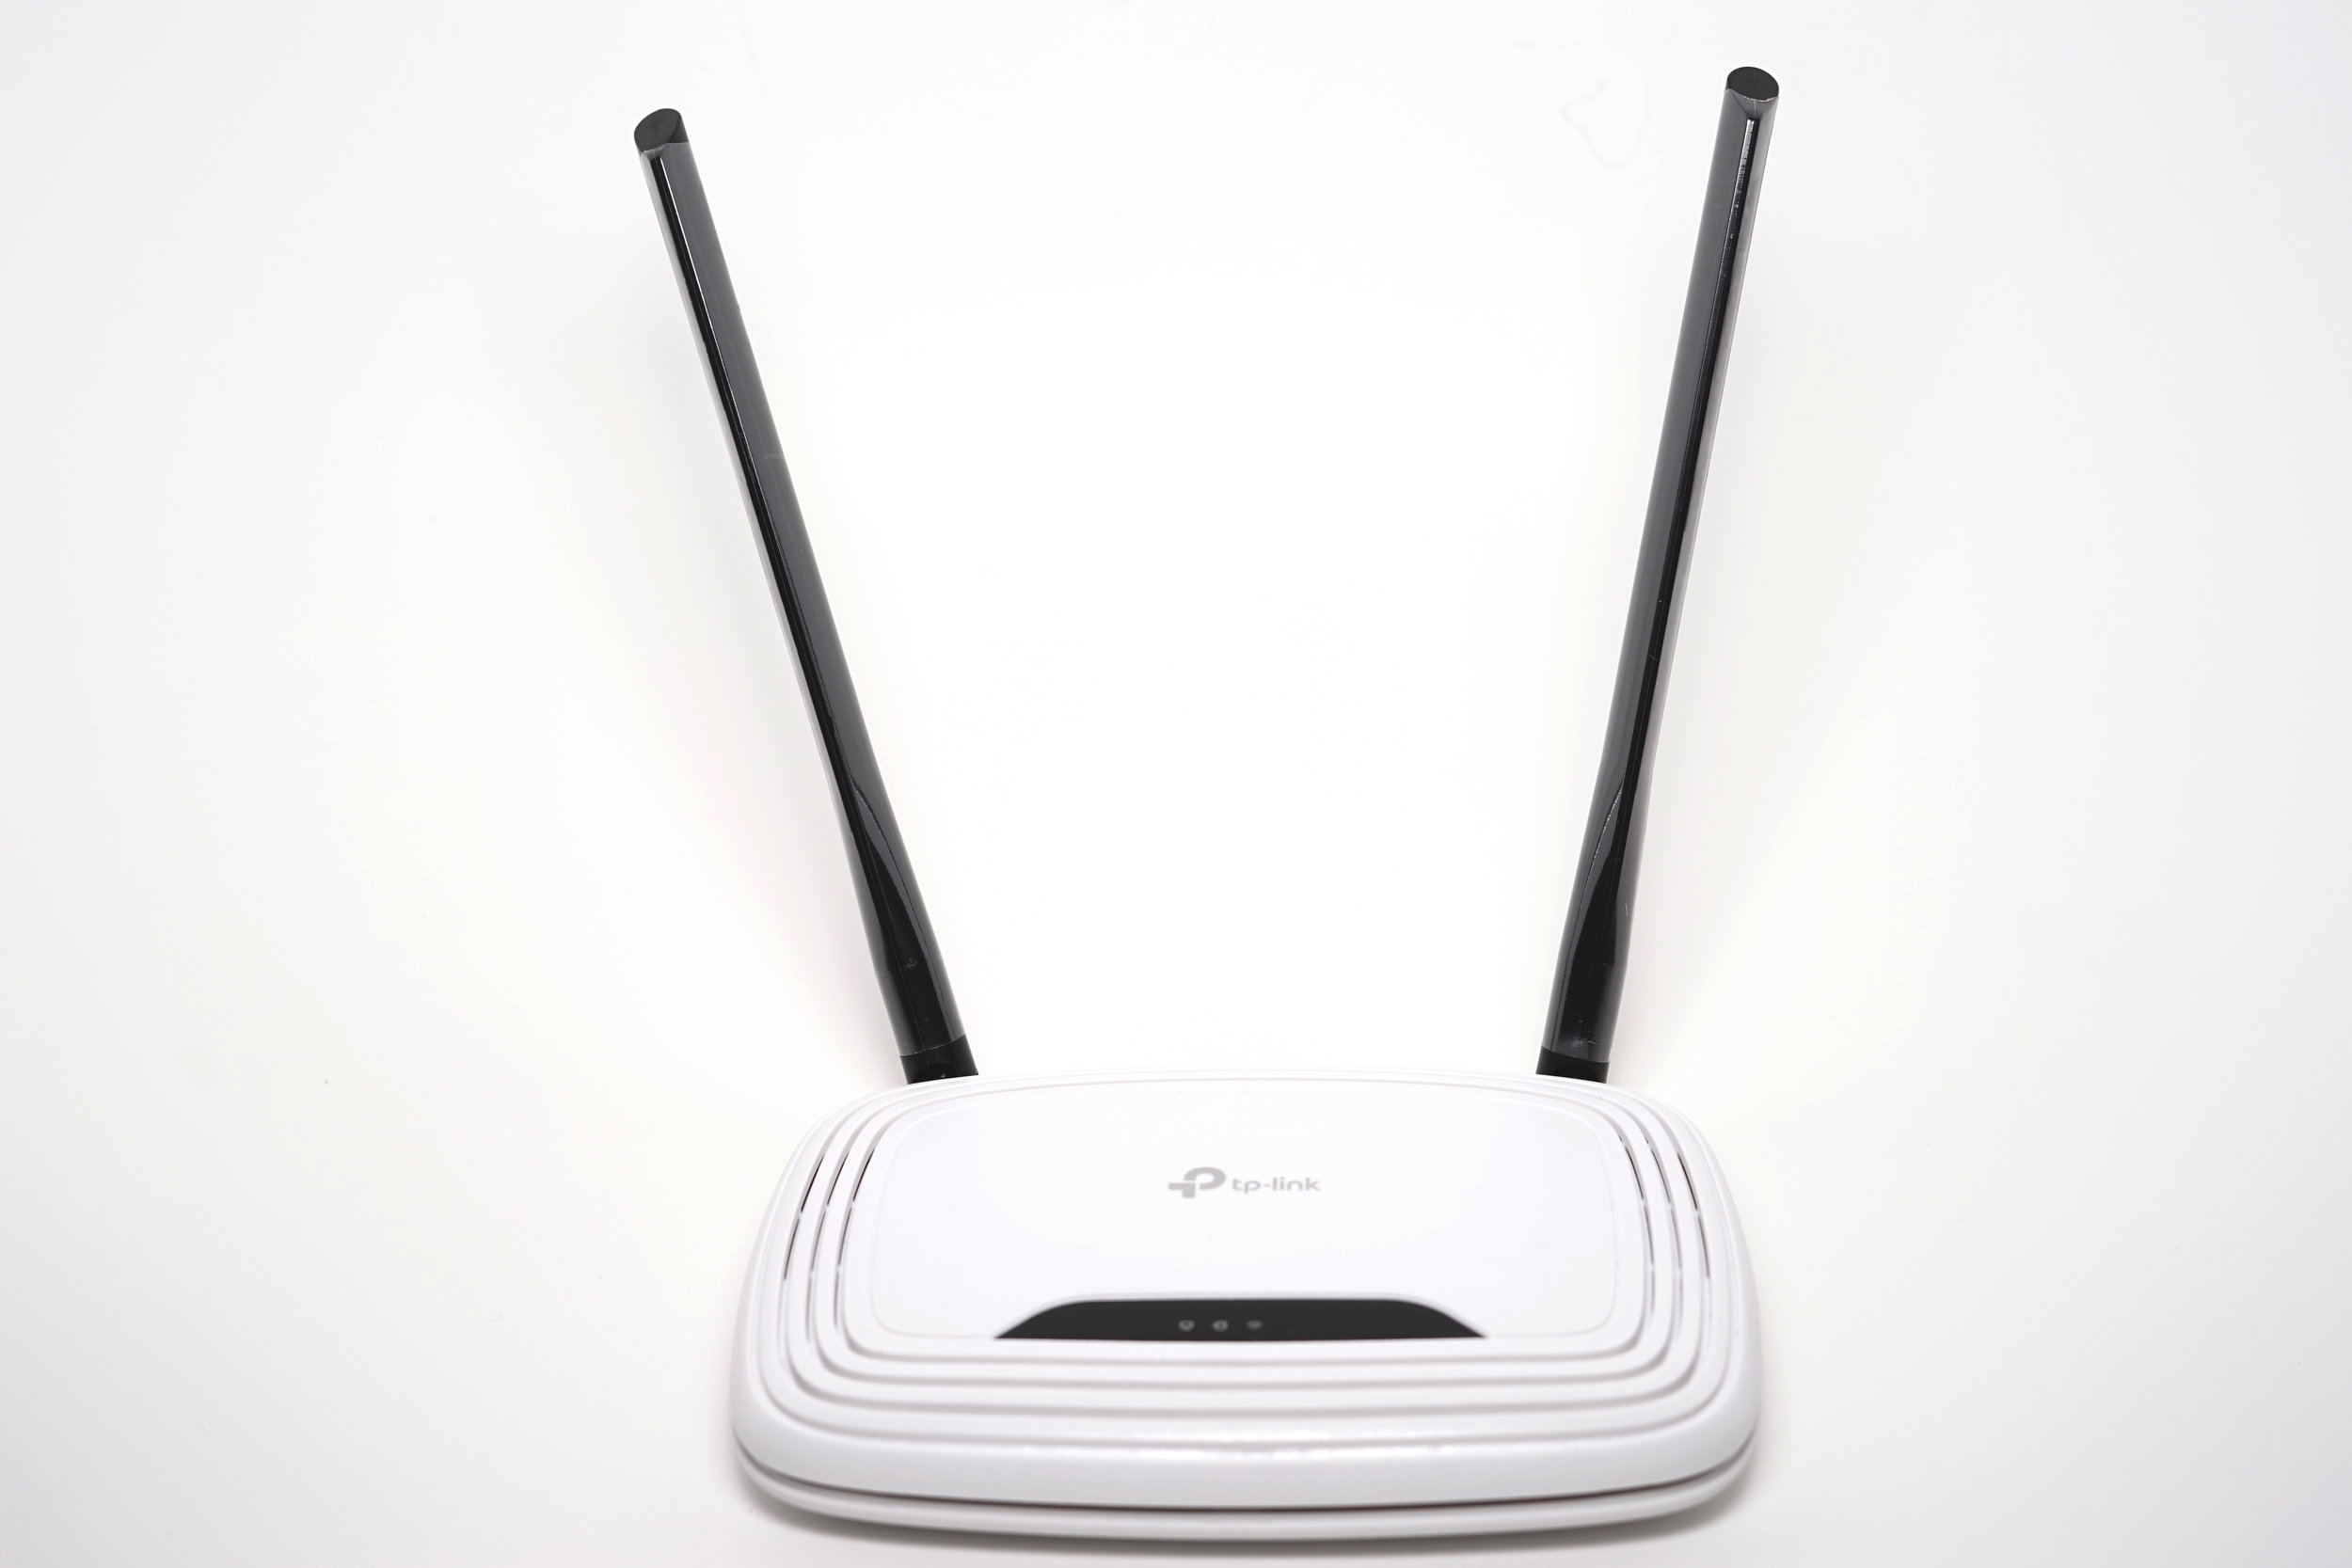 Figure 1 - The TP-Link TL-WR841Nv14 Router